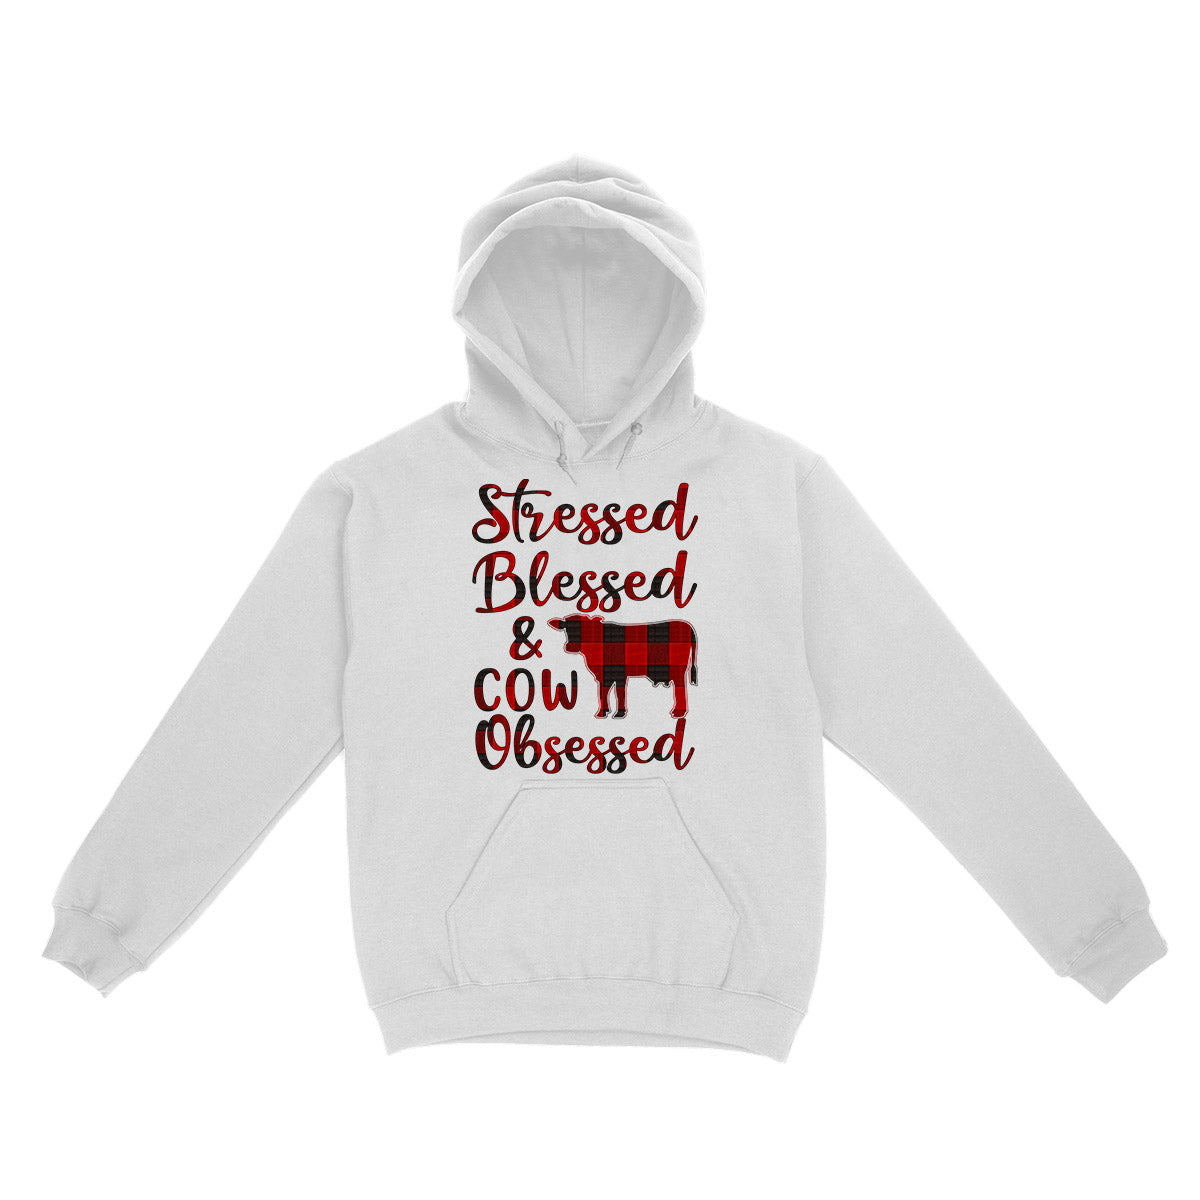 Stressed Blessed Cow Obssesed EZ03 3103 Hoodie